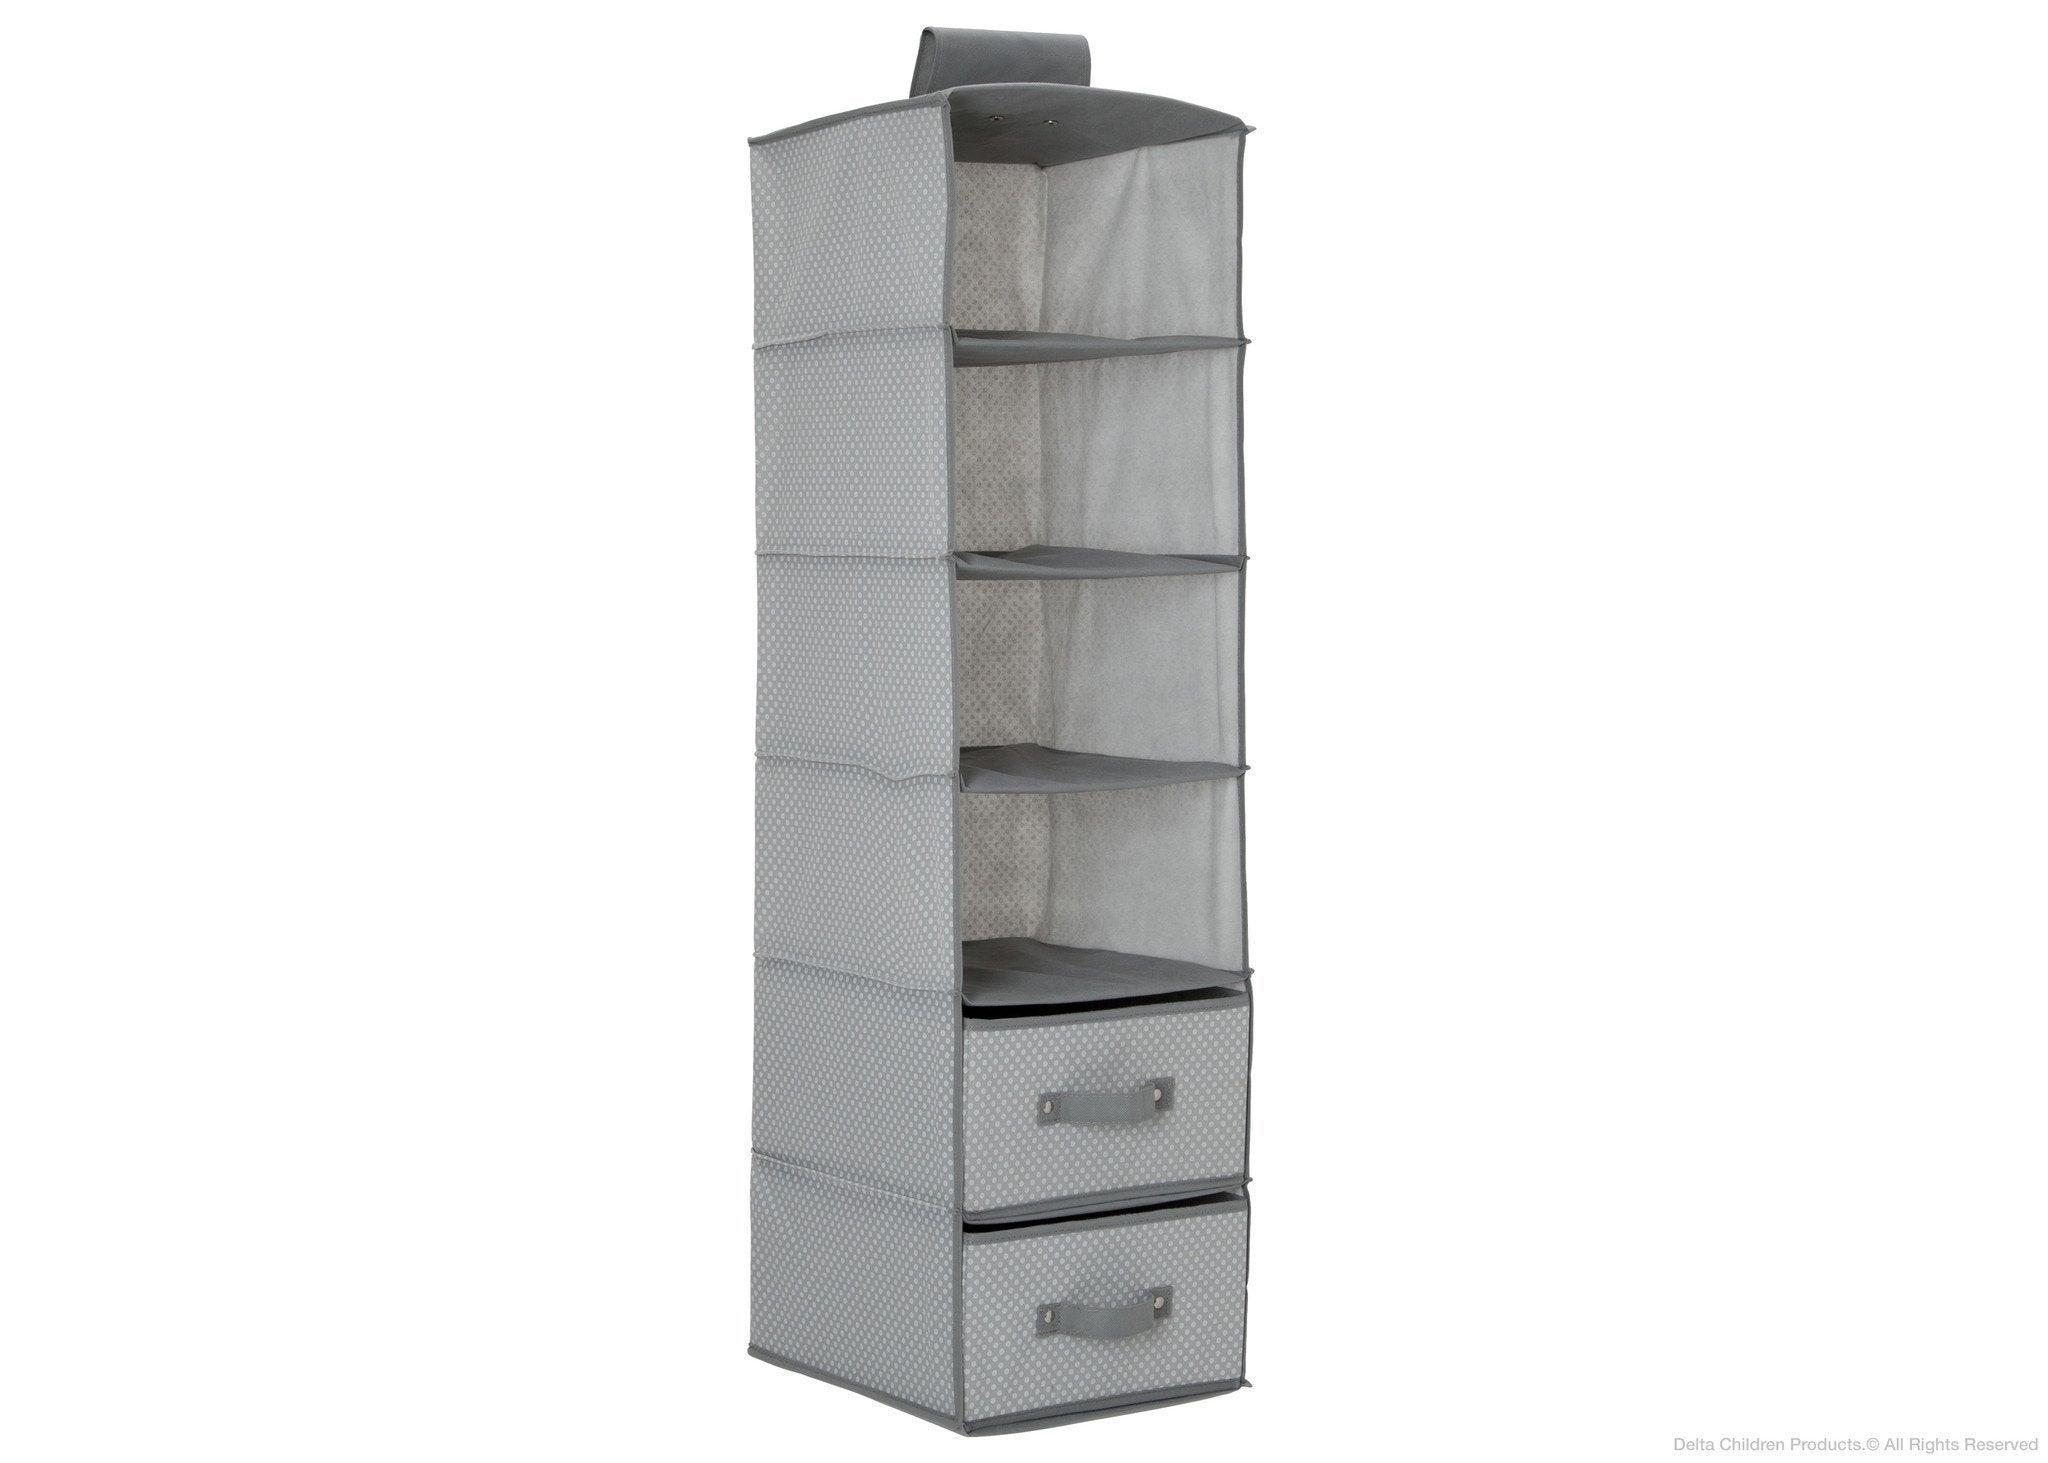 SS2060 058 6 Shelf 2 Drawers Grey Hi Res A9ffbd11 Cb19 4b23 8f31 58e5a220b25fv1524667509